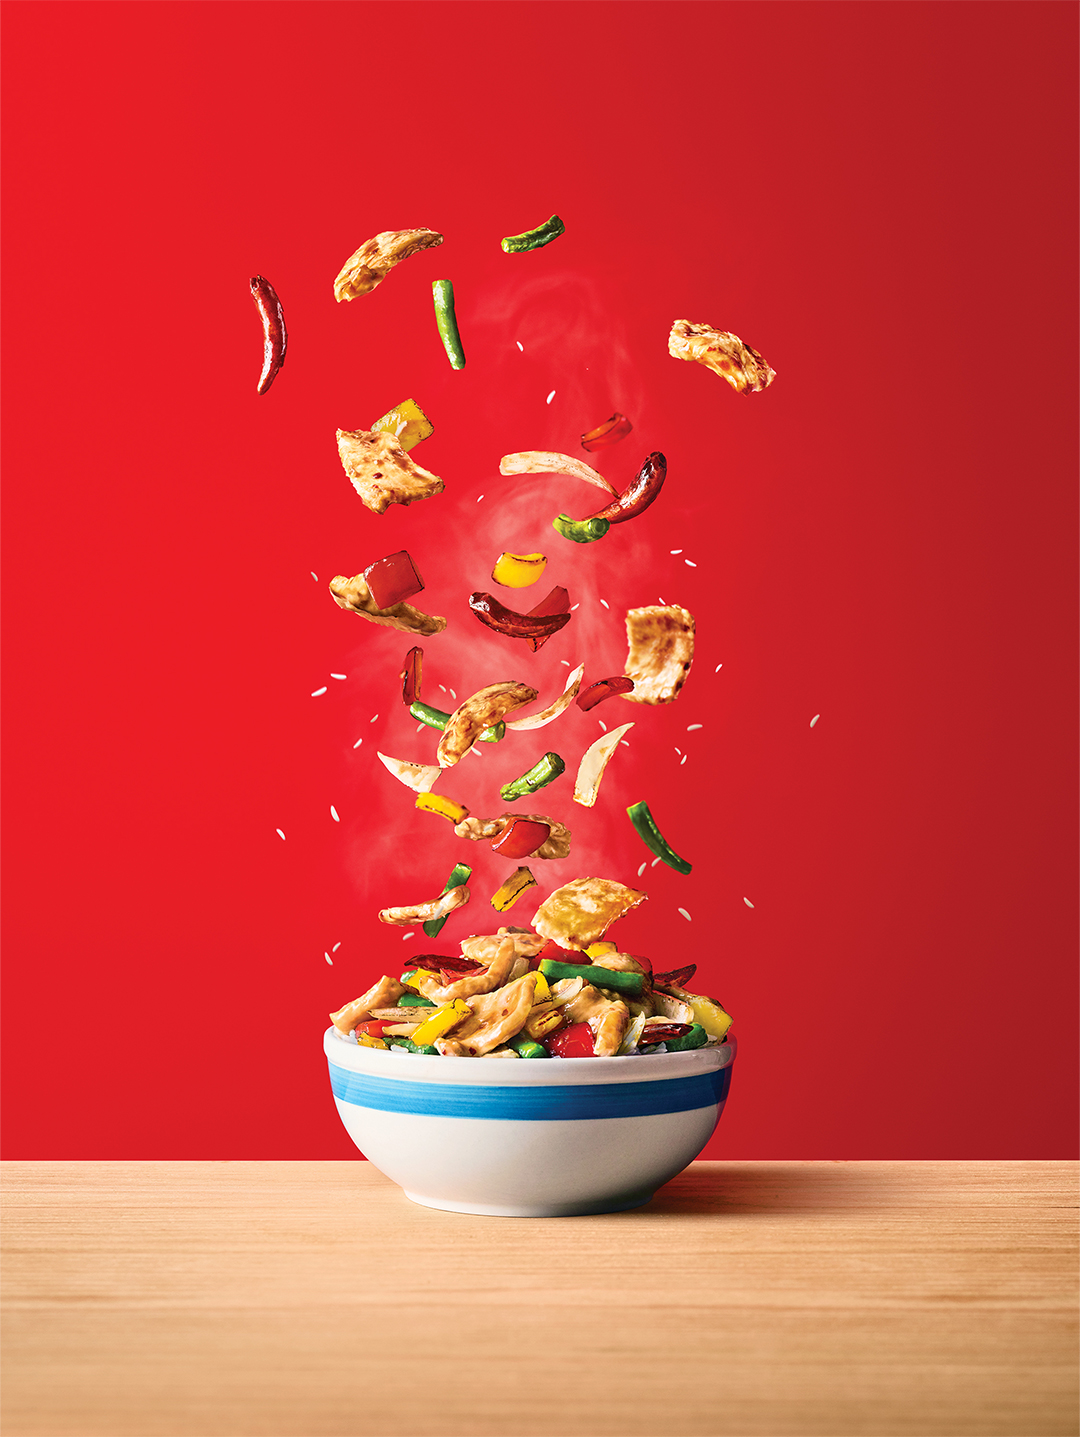 Panda Express Firecracker Chicken Bowl with flying ingredients on a wooden table.